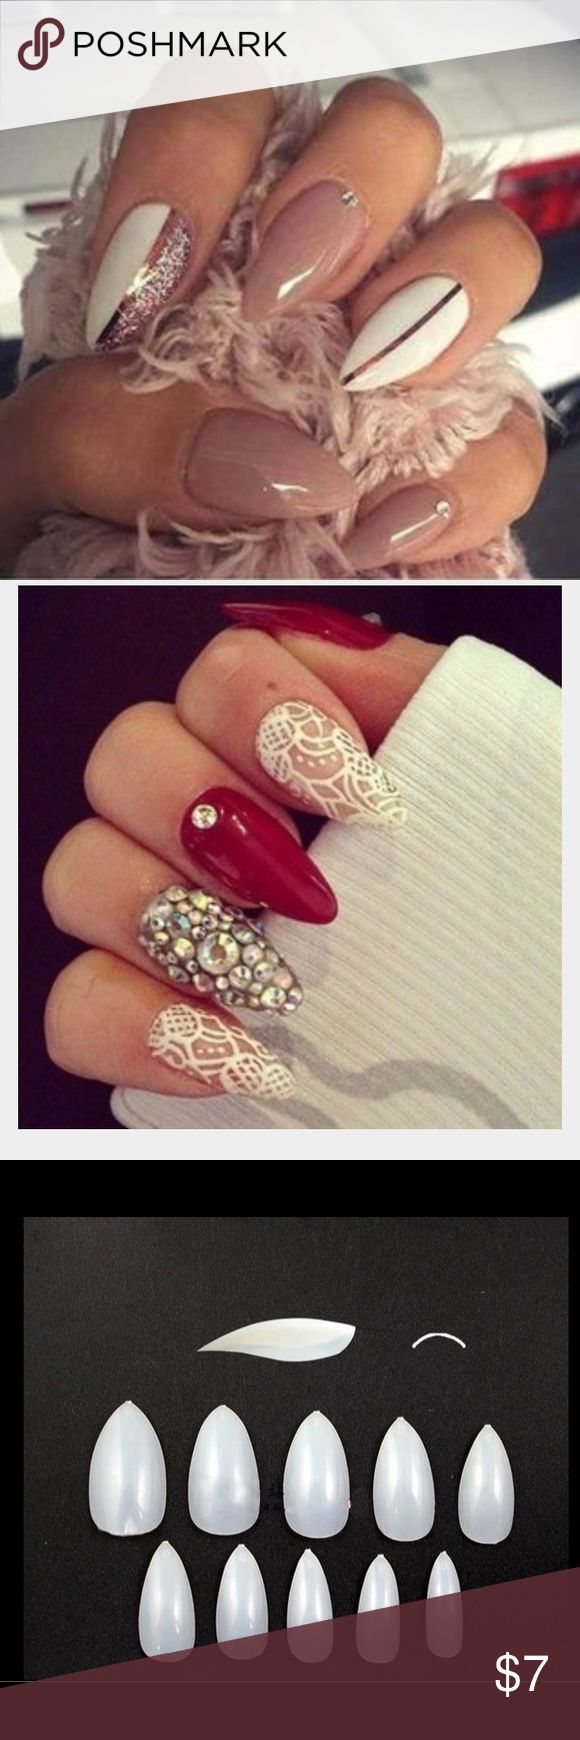 Almond Shaped Nails Very cute nails, you will get 24 pieces of natural nails the third pic is what you are buying. Accessories